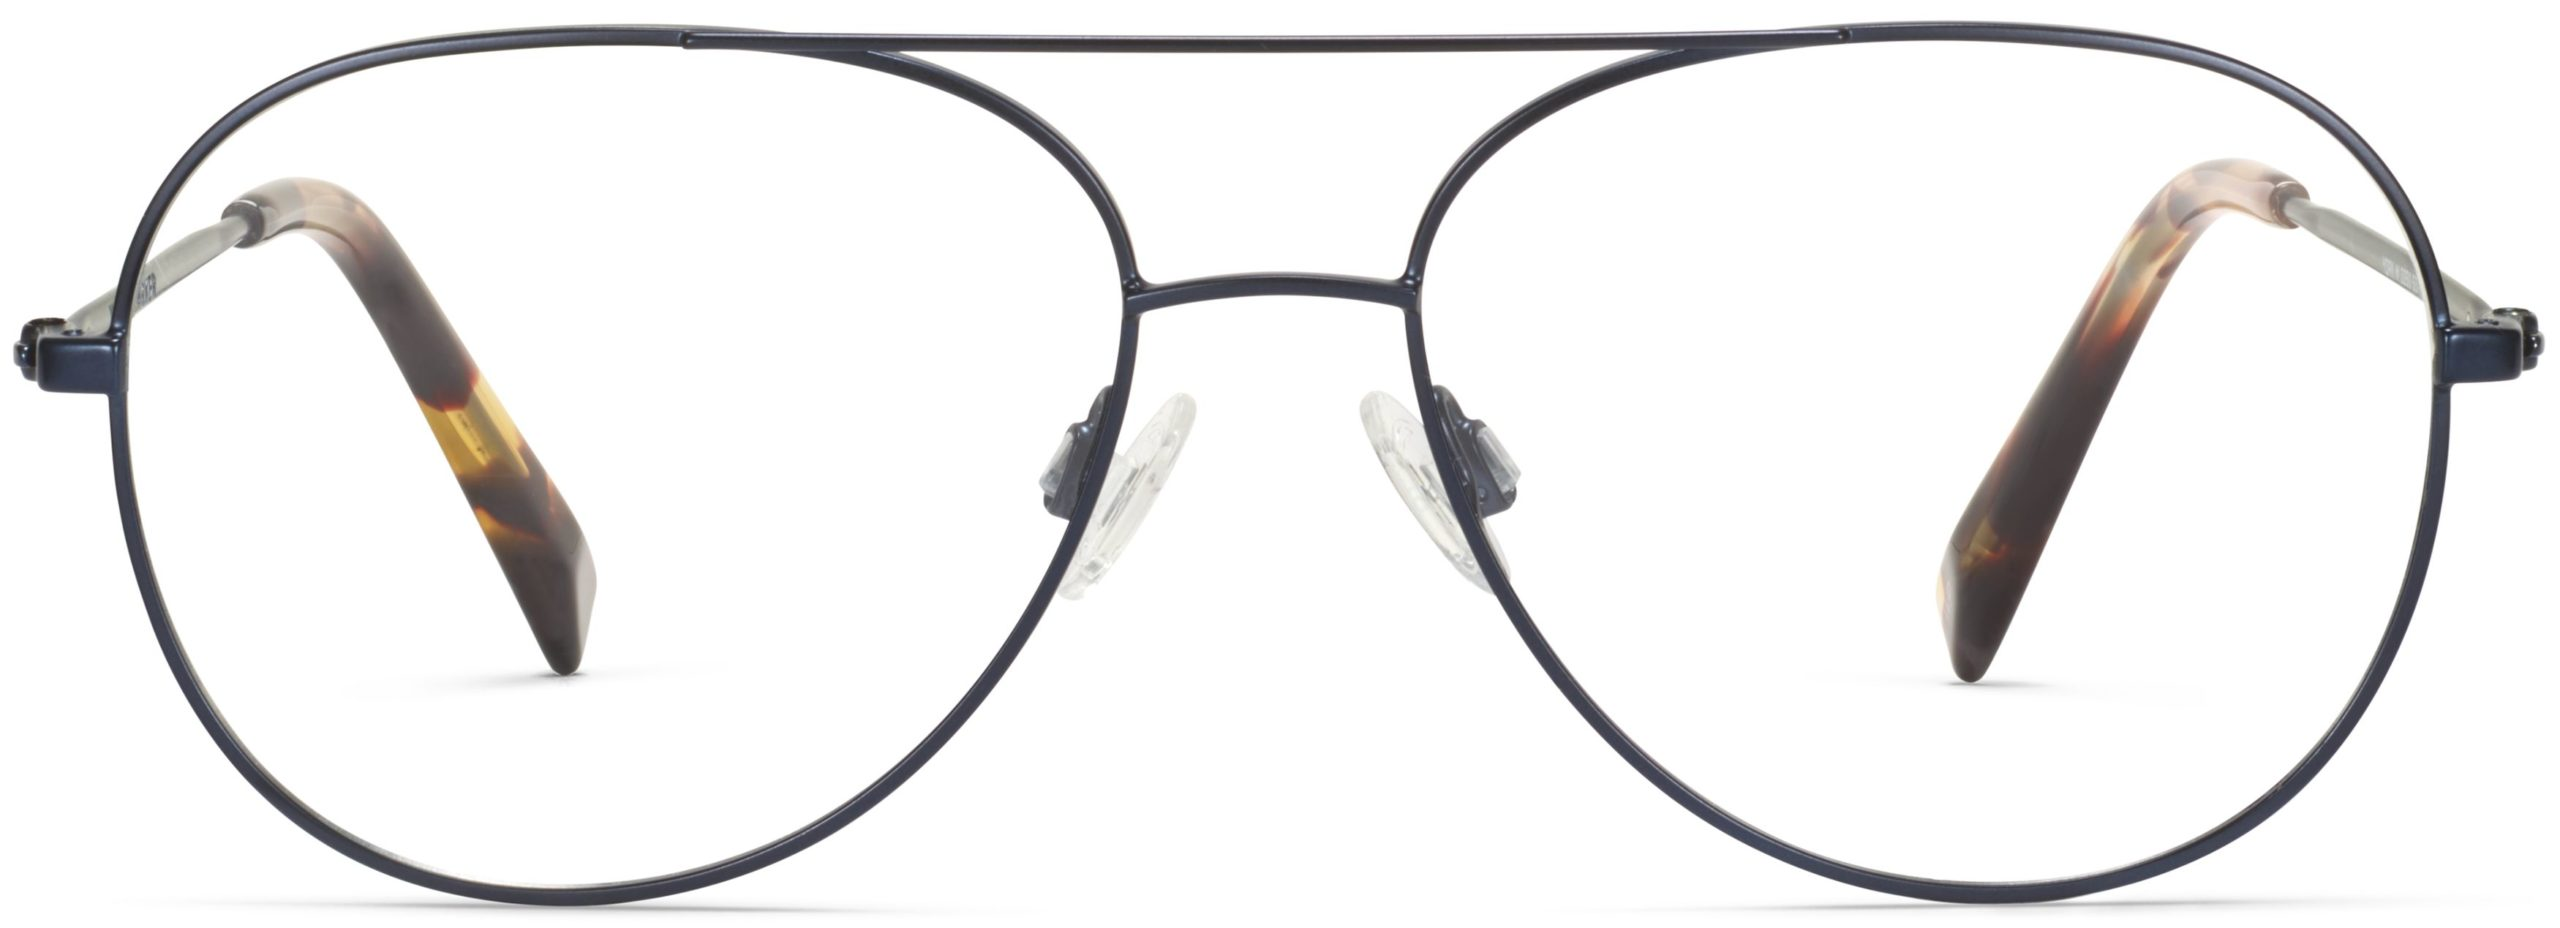 Front View Image of York Eyeglasses Collection, by Warby Parker Brand, in Brushed Navy Color